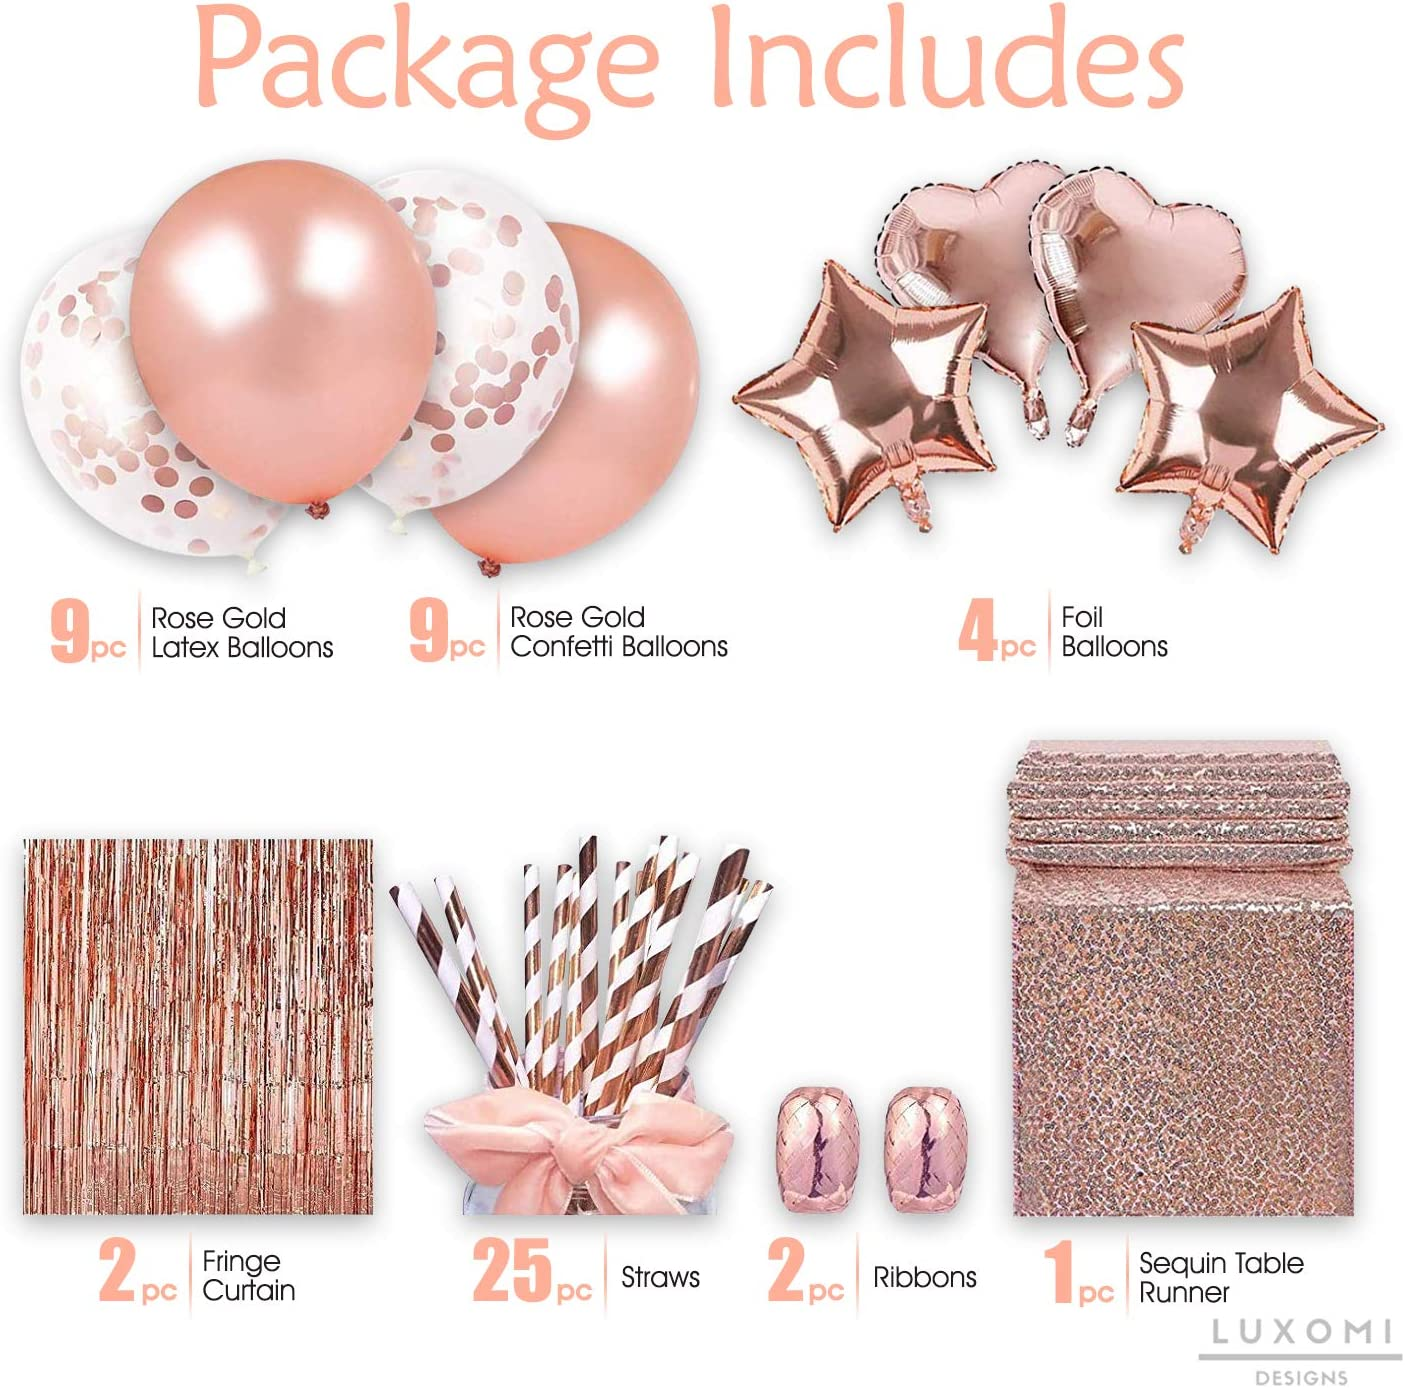 Luxomi Rose Gold Party Decorations Supplies 52 Pack Confetti Balloons Sequin Table Runner Bridal Shower or Birthday Party Fringe Curtain and Paper Straws for Bachelorette 18 inch Foil Balloons